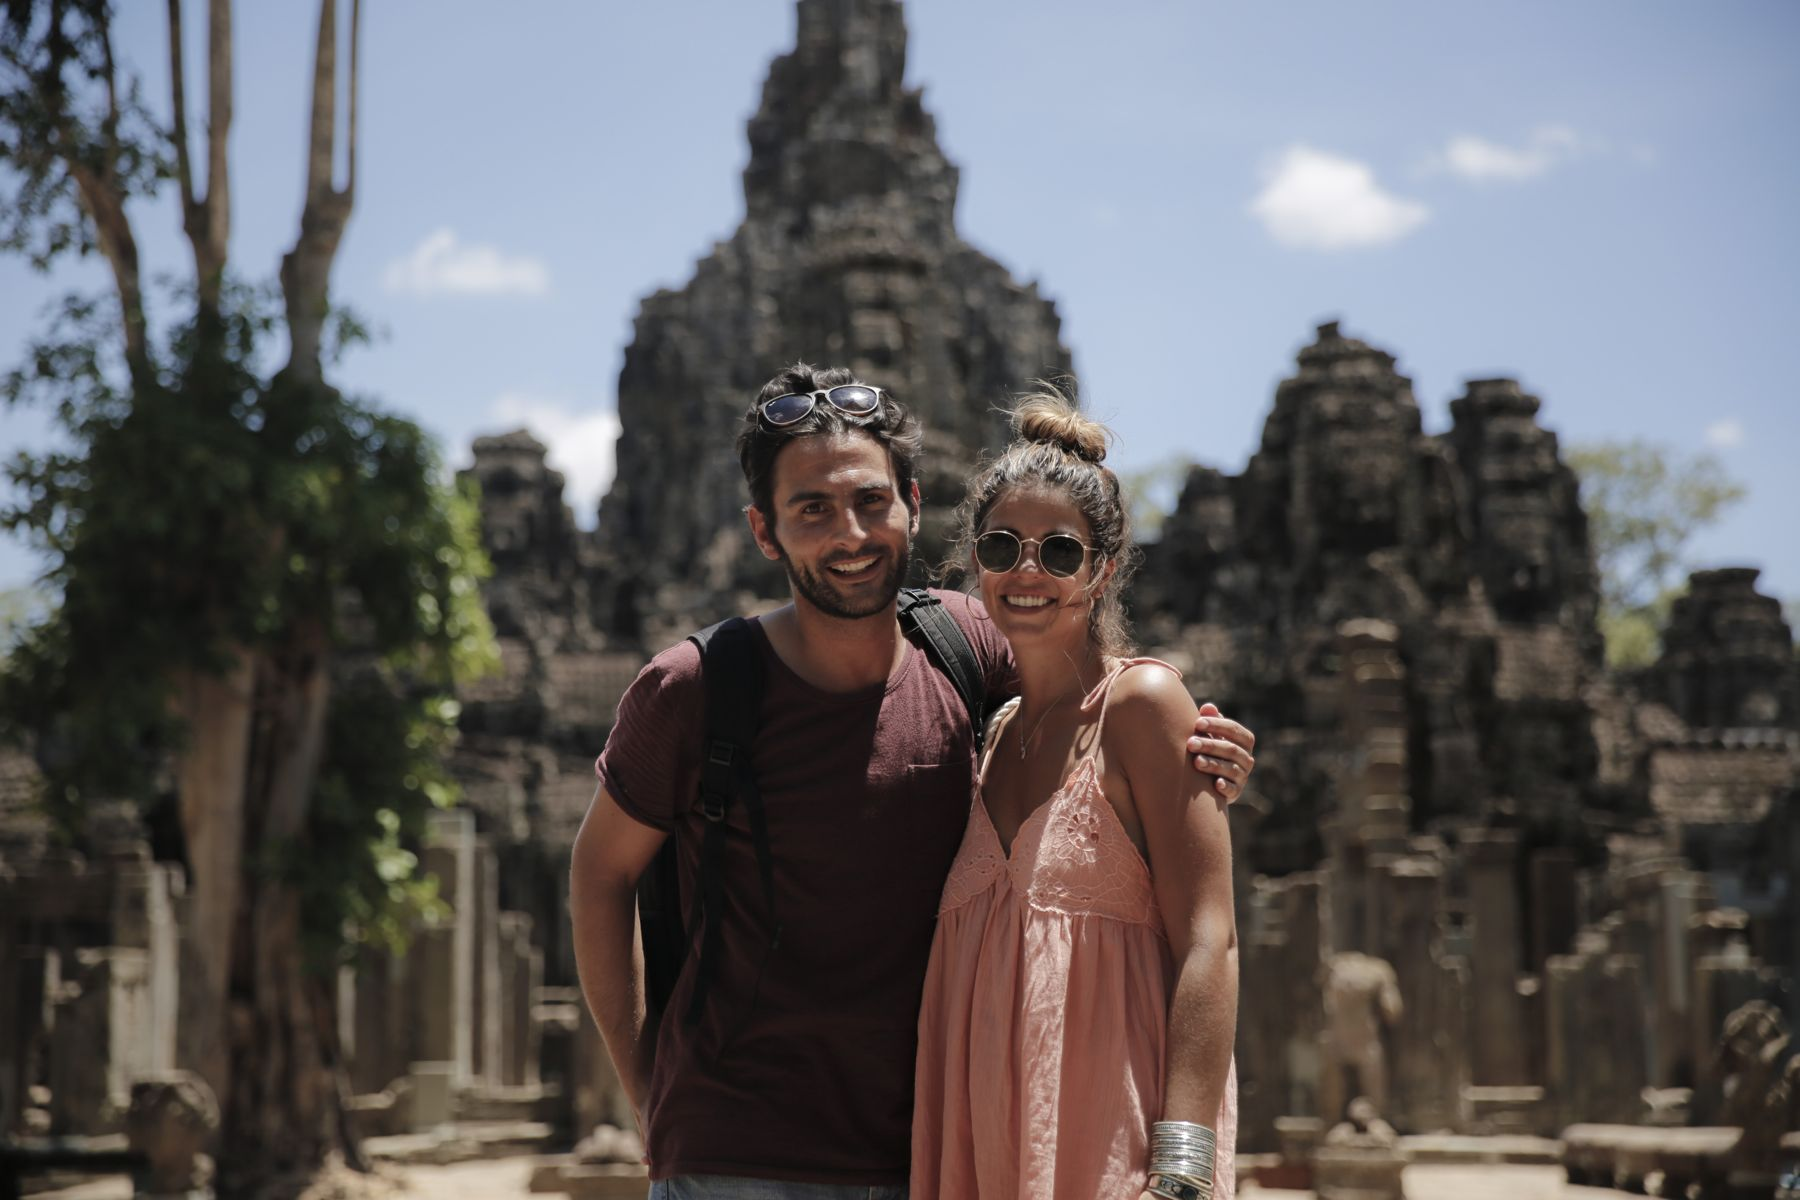 camboya cambodia angkor wat trendy taste summer trip outfit look dress sneakers stan smith vestido zapatillas asos adidas _26